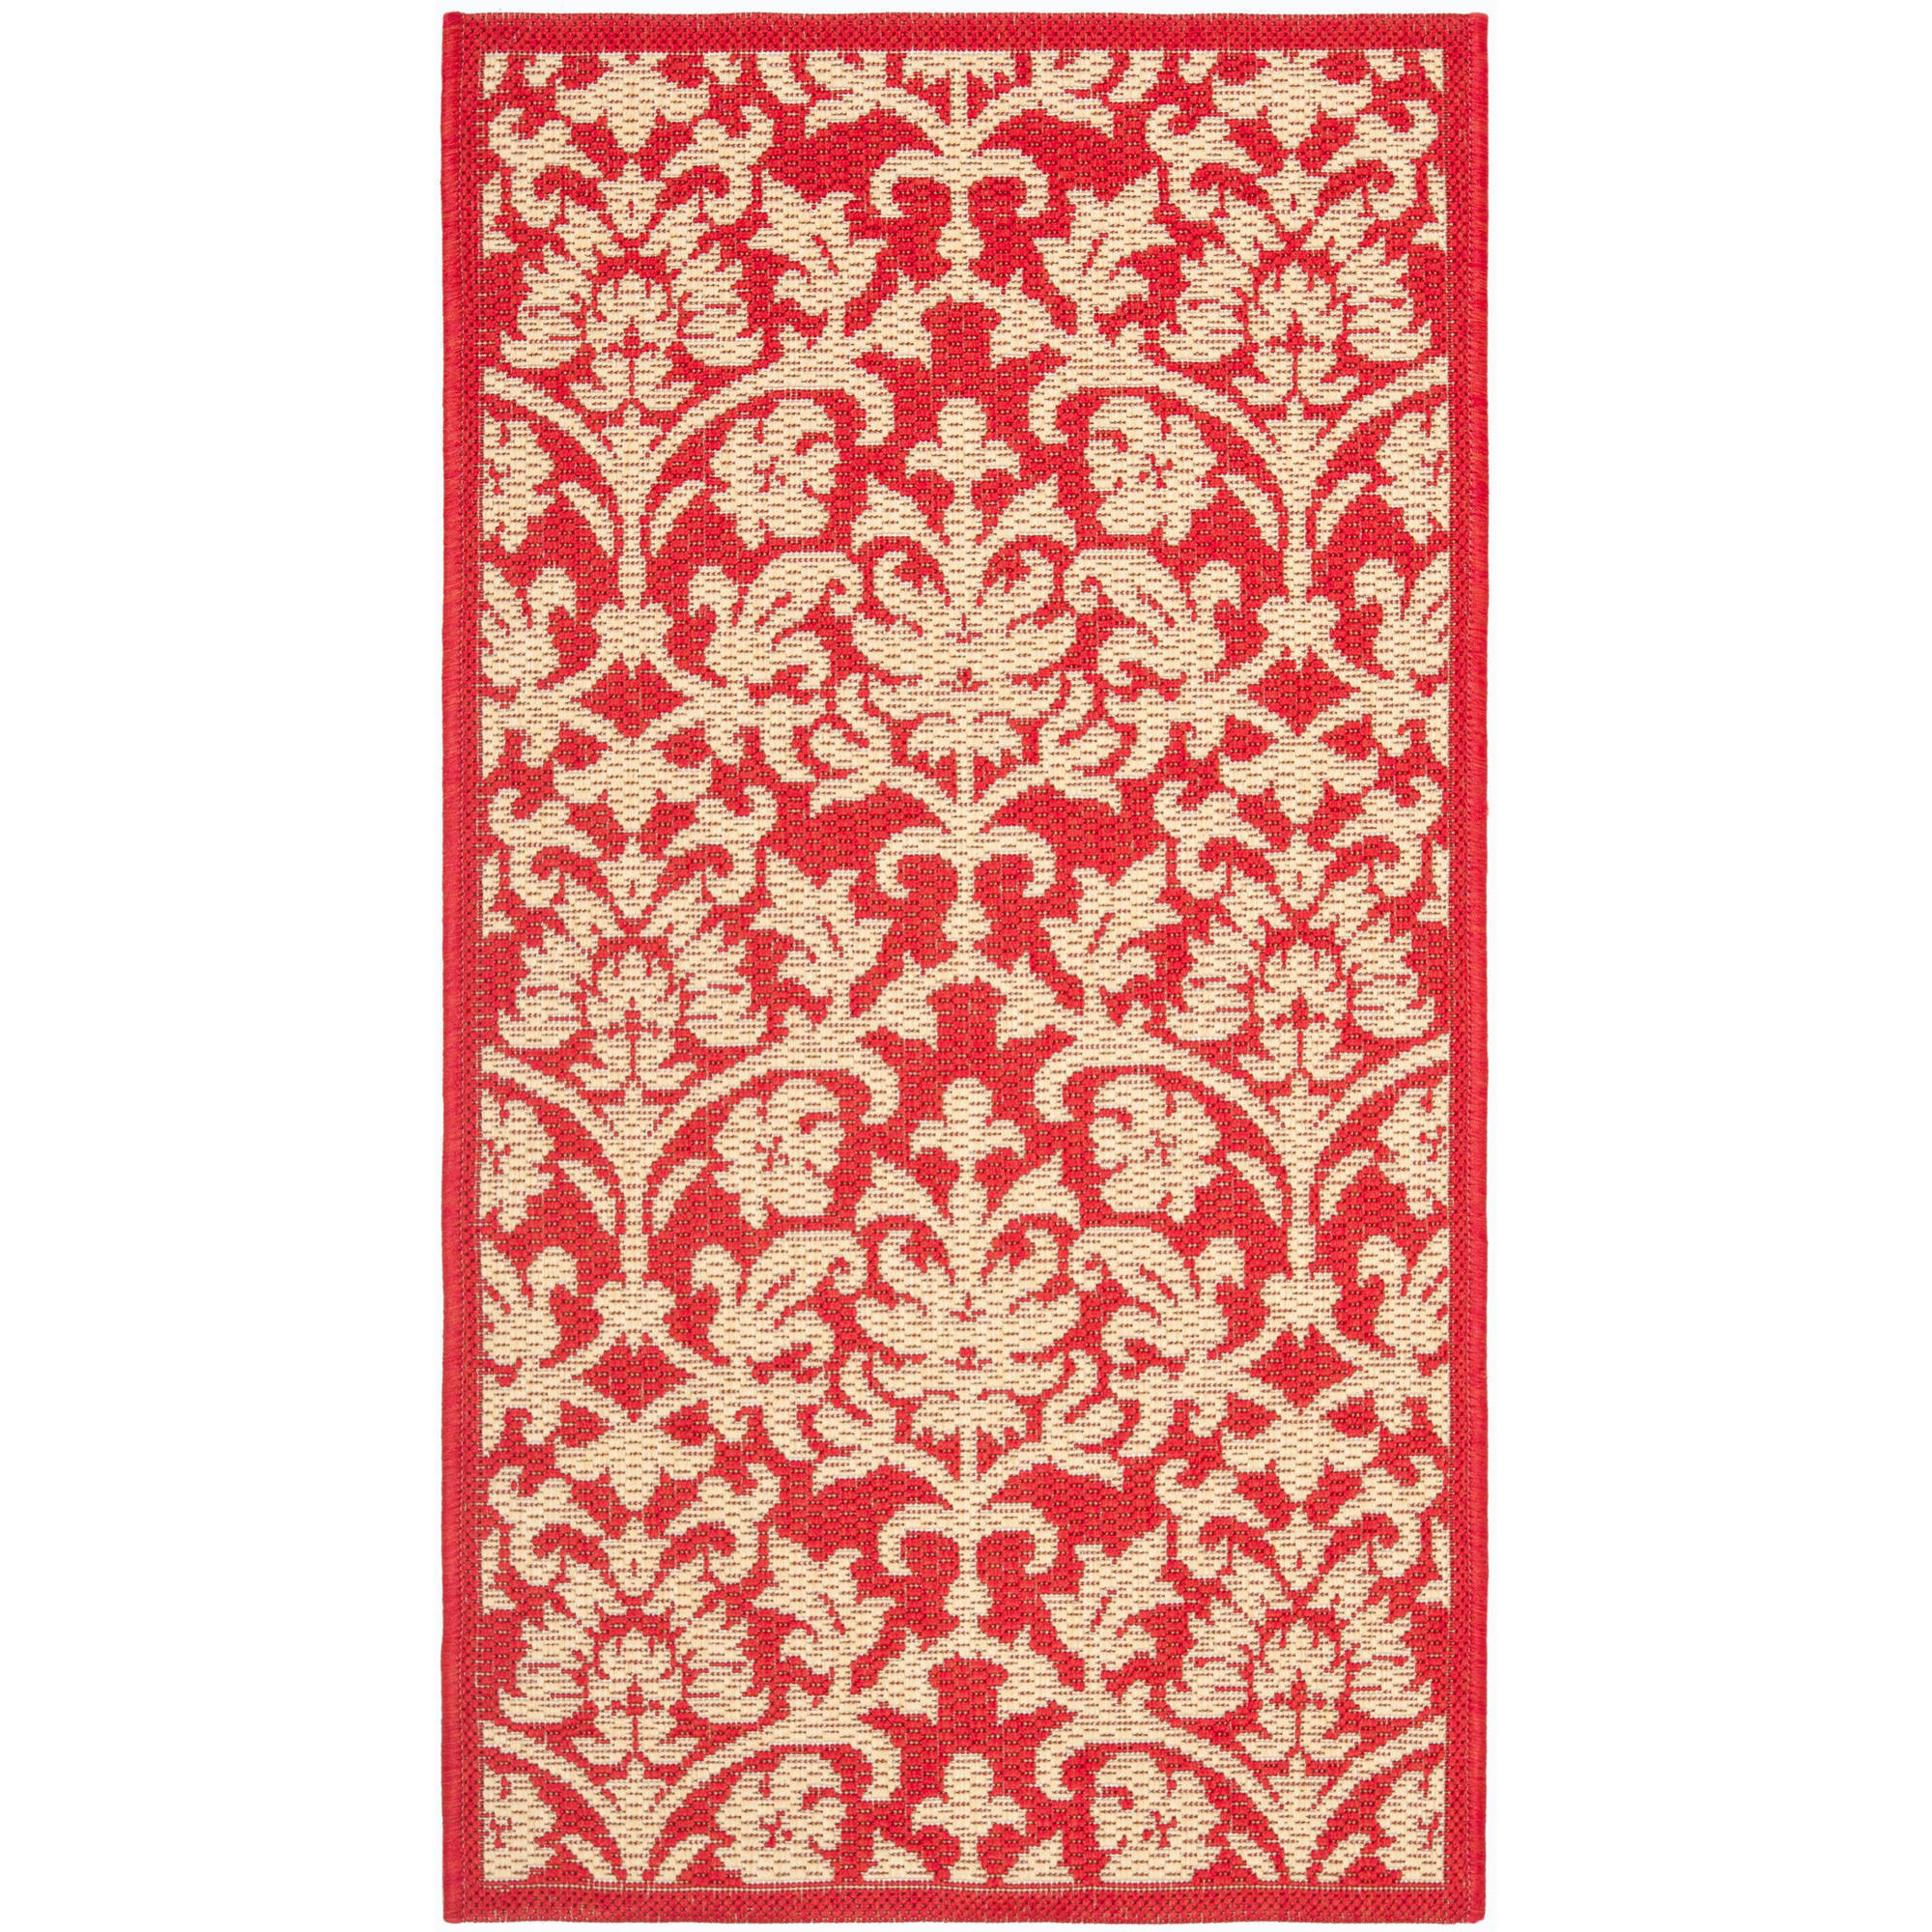 Courtyard Clapton Indoor/Outdoor Rug